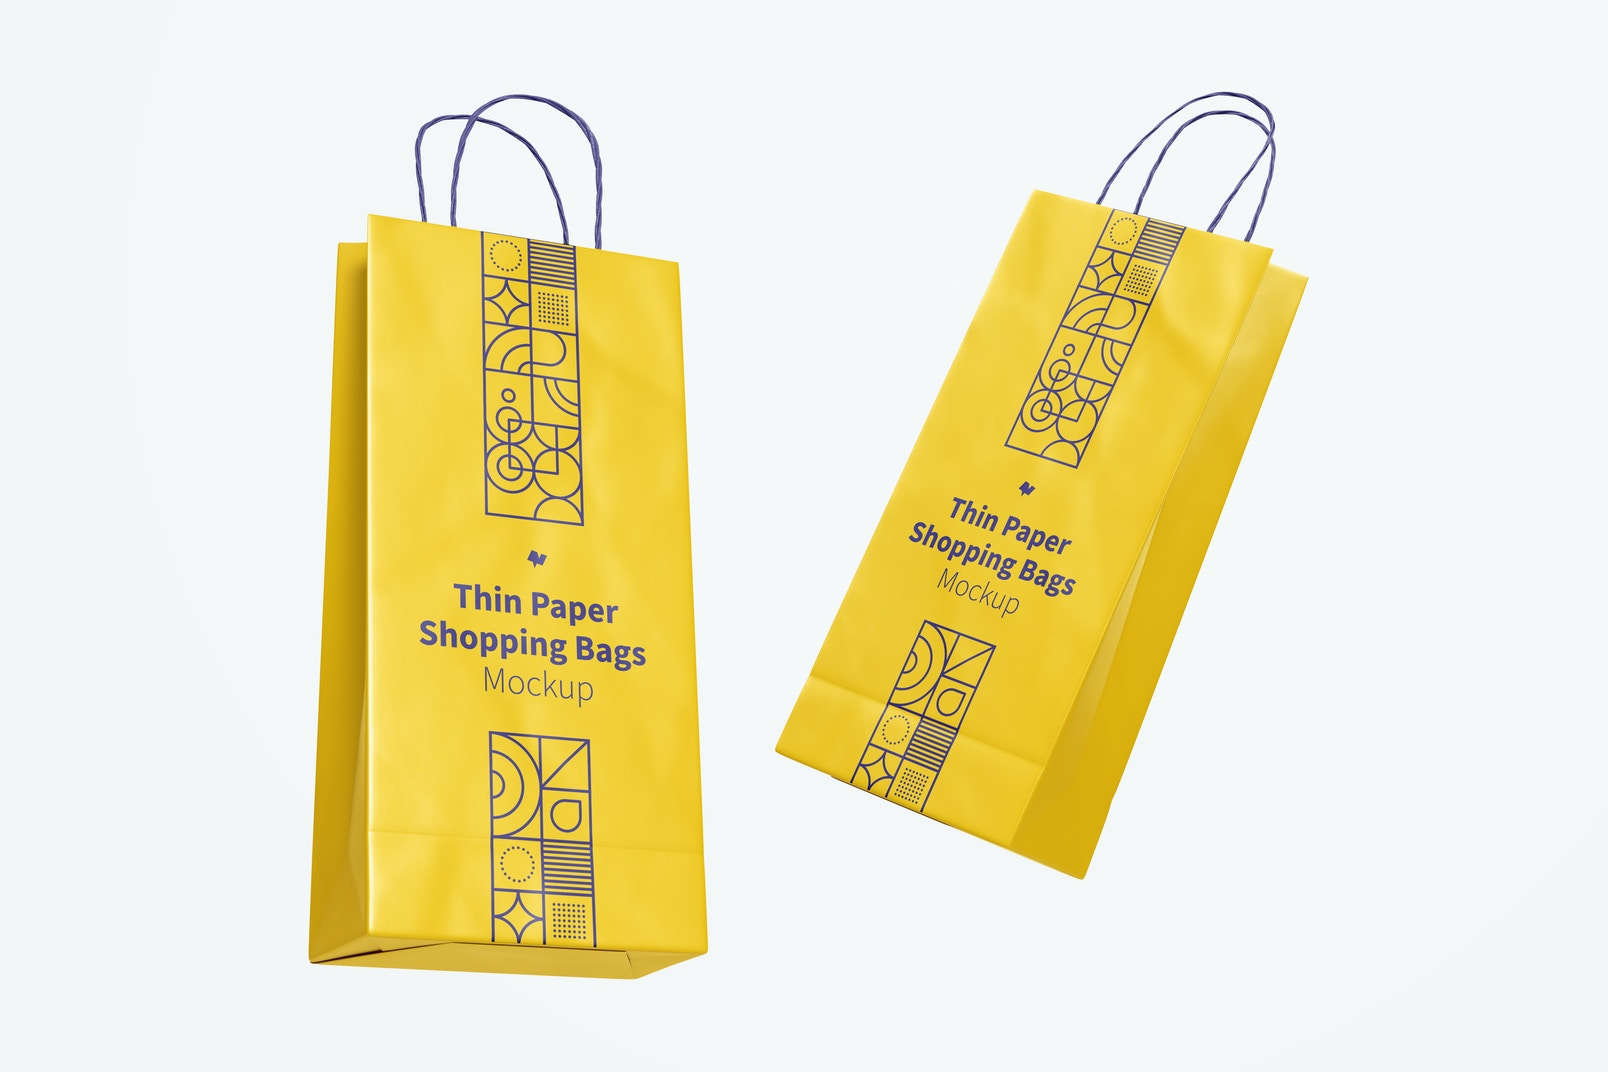 Thin Paper Shopping Bags Mockup, Floating